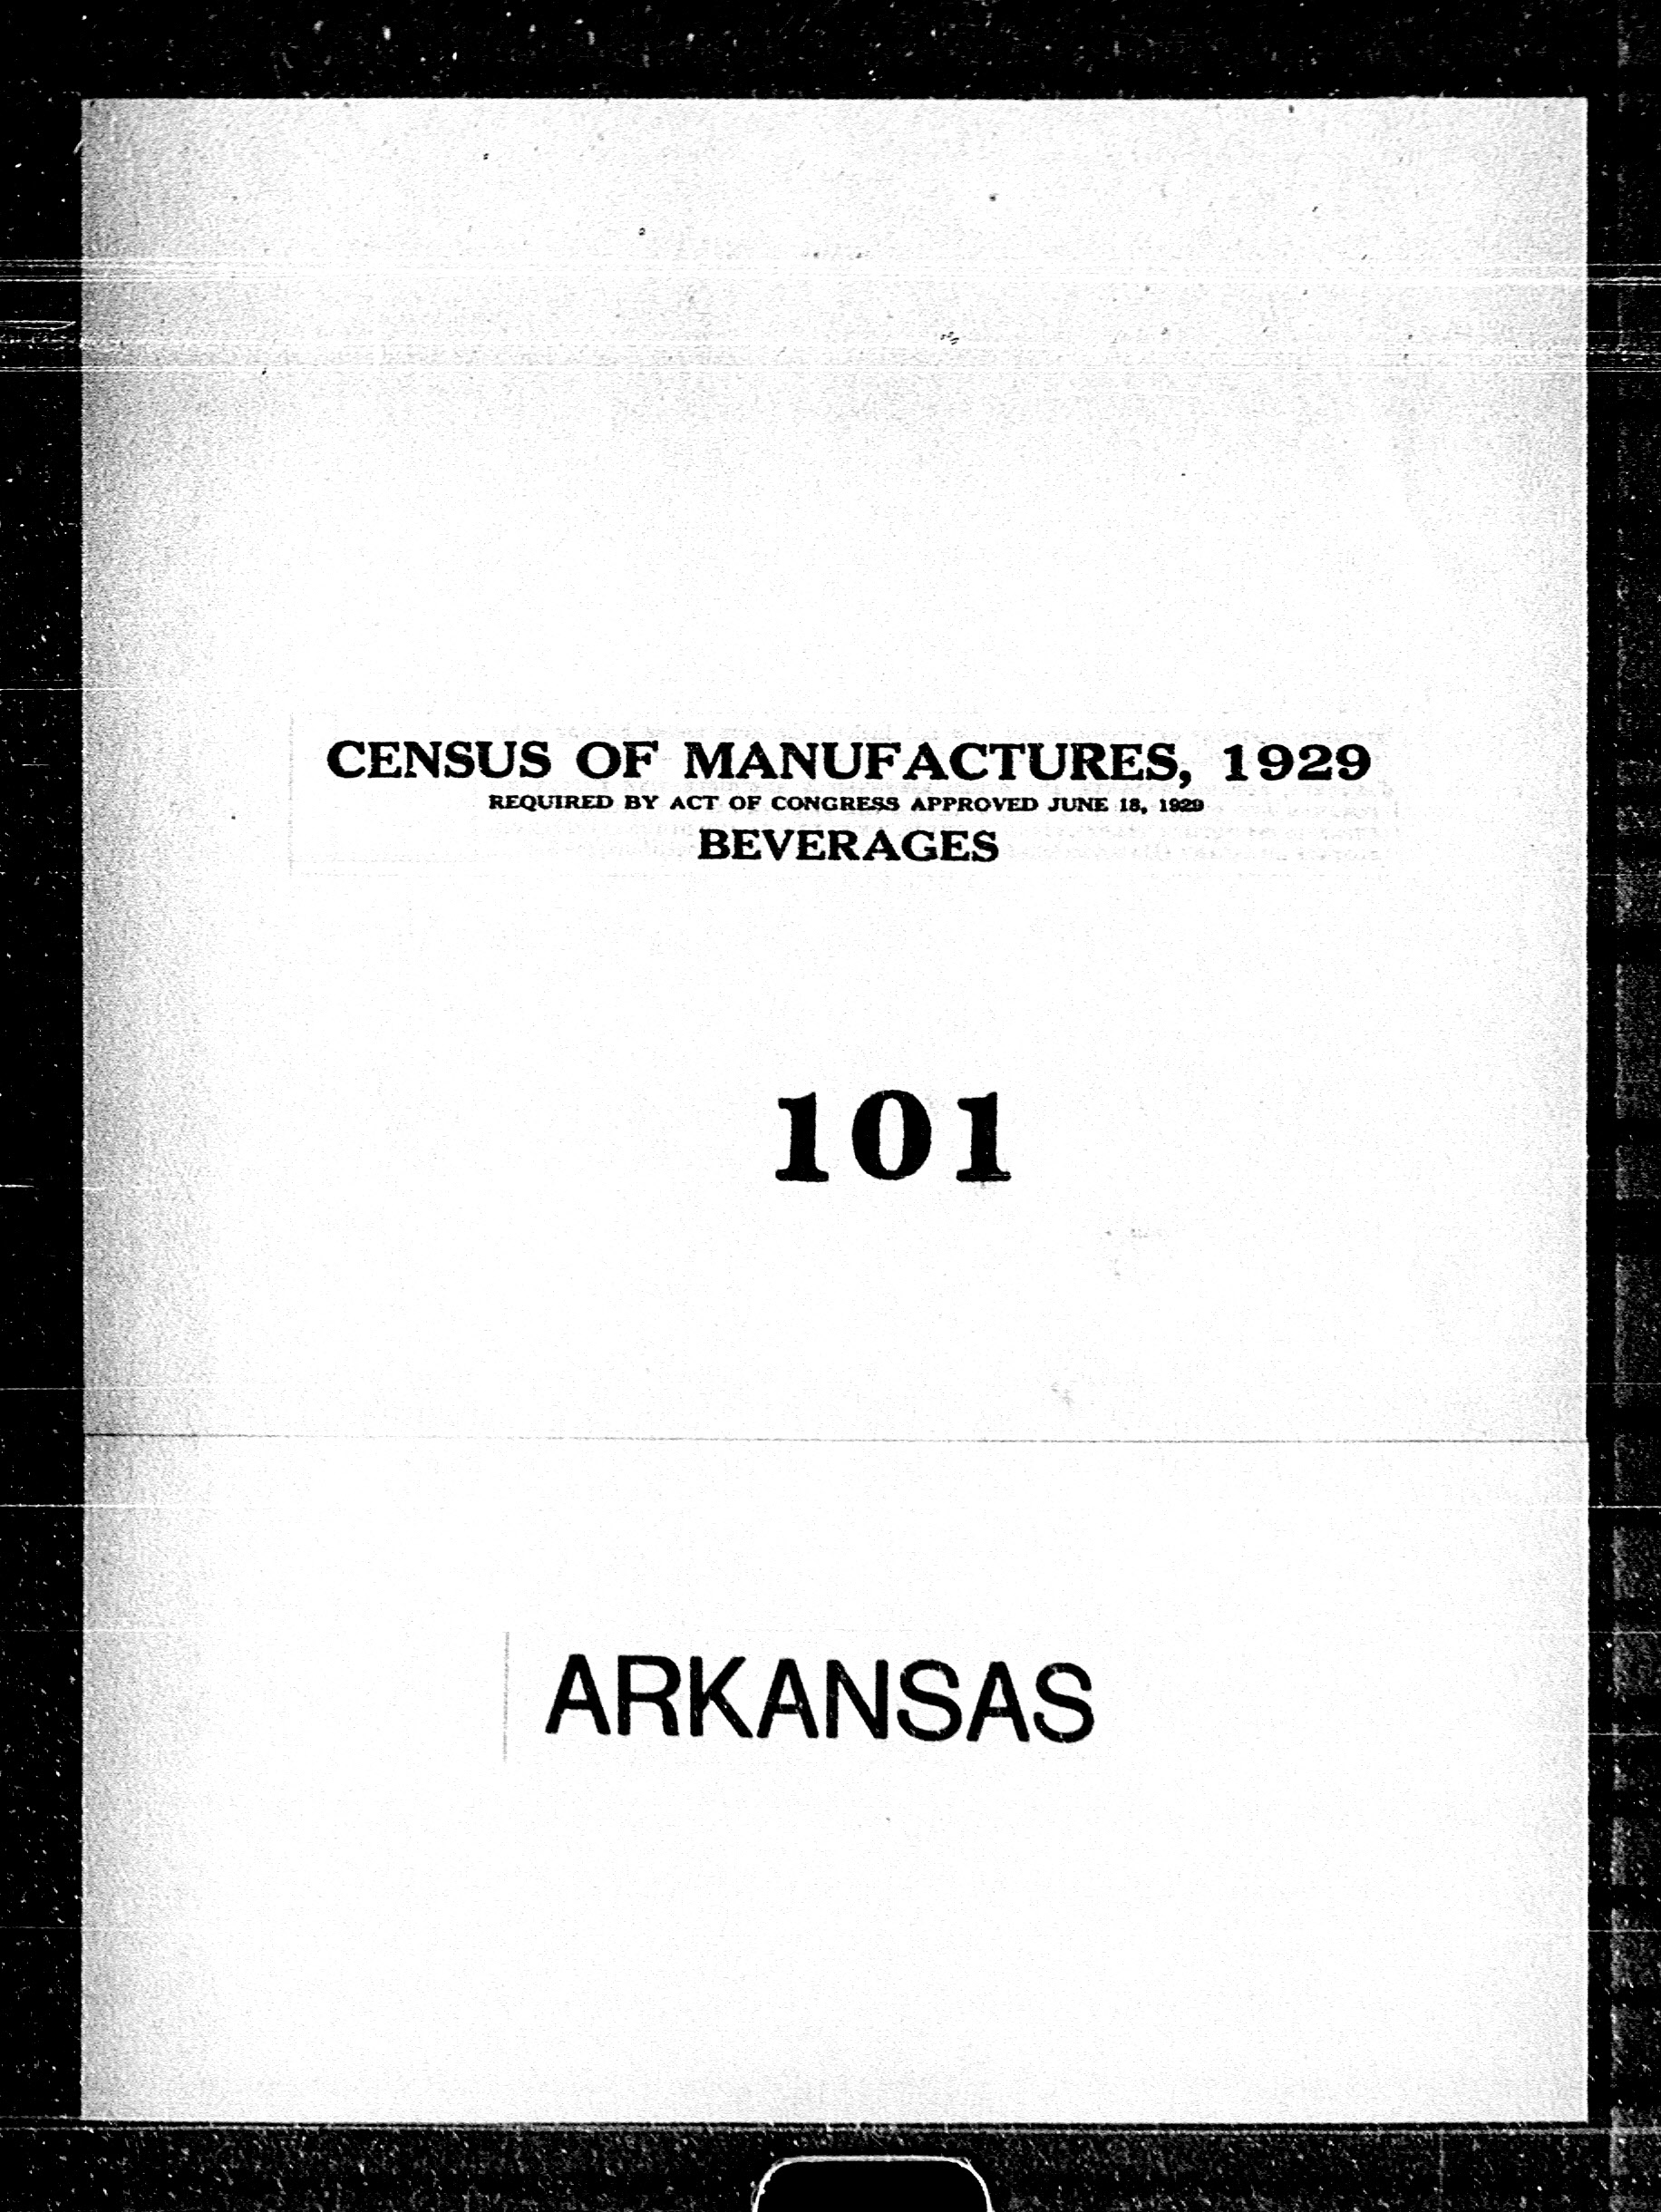 Arkansas: Industry No. 101 - Beverages